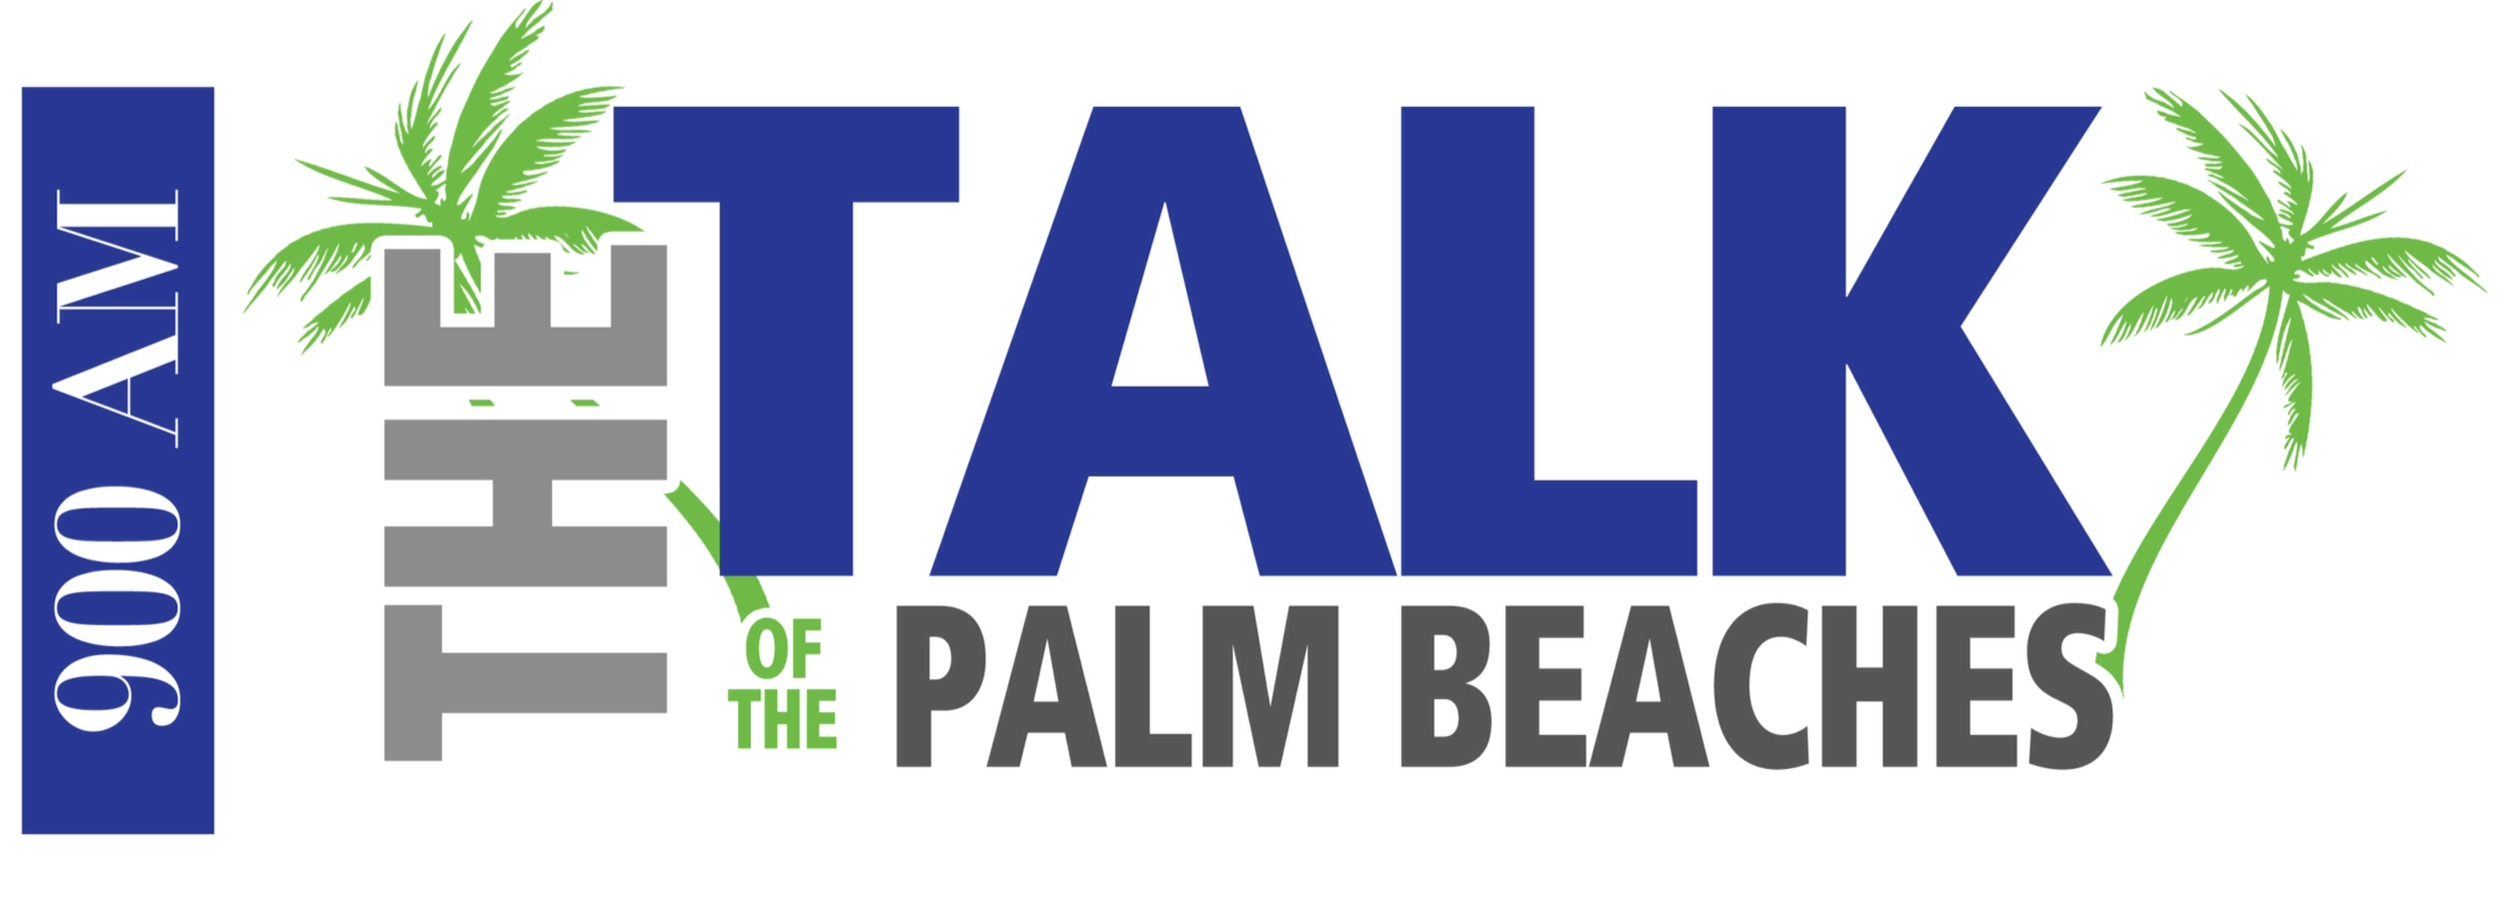 900 The Talk of the Palm Beaches